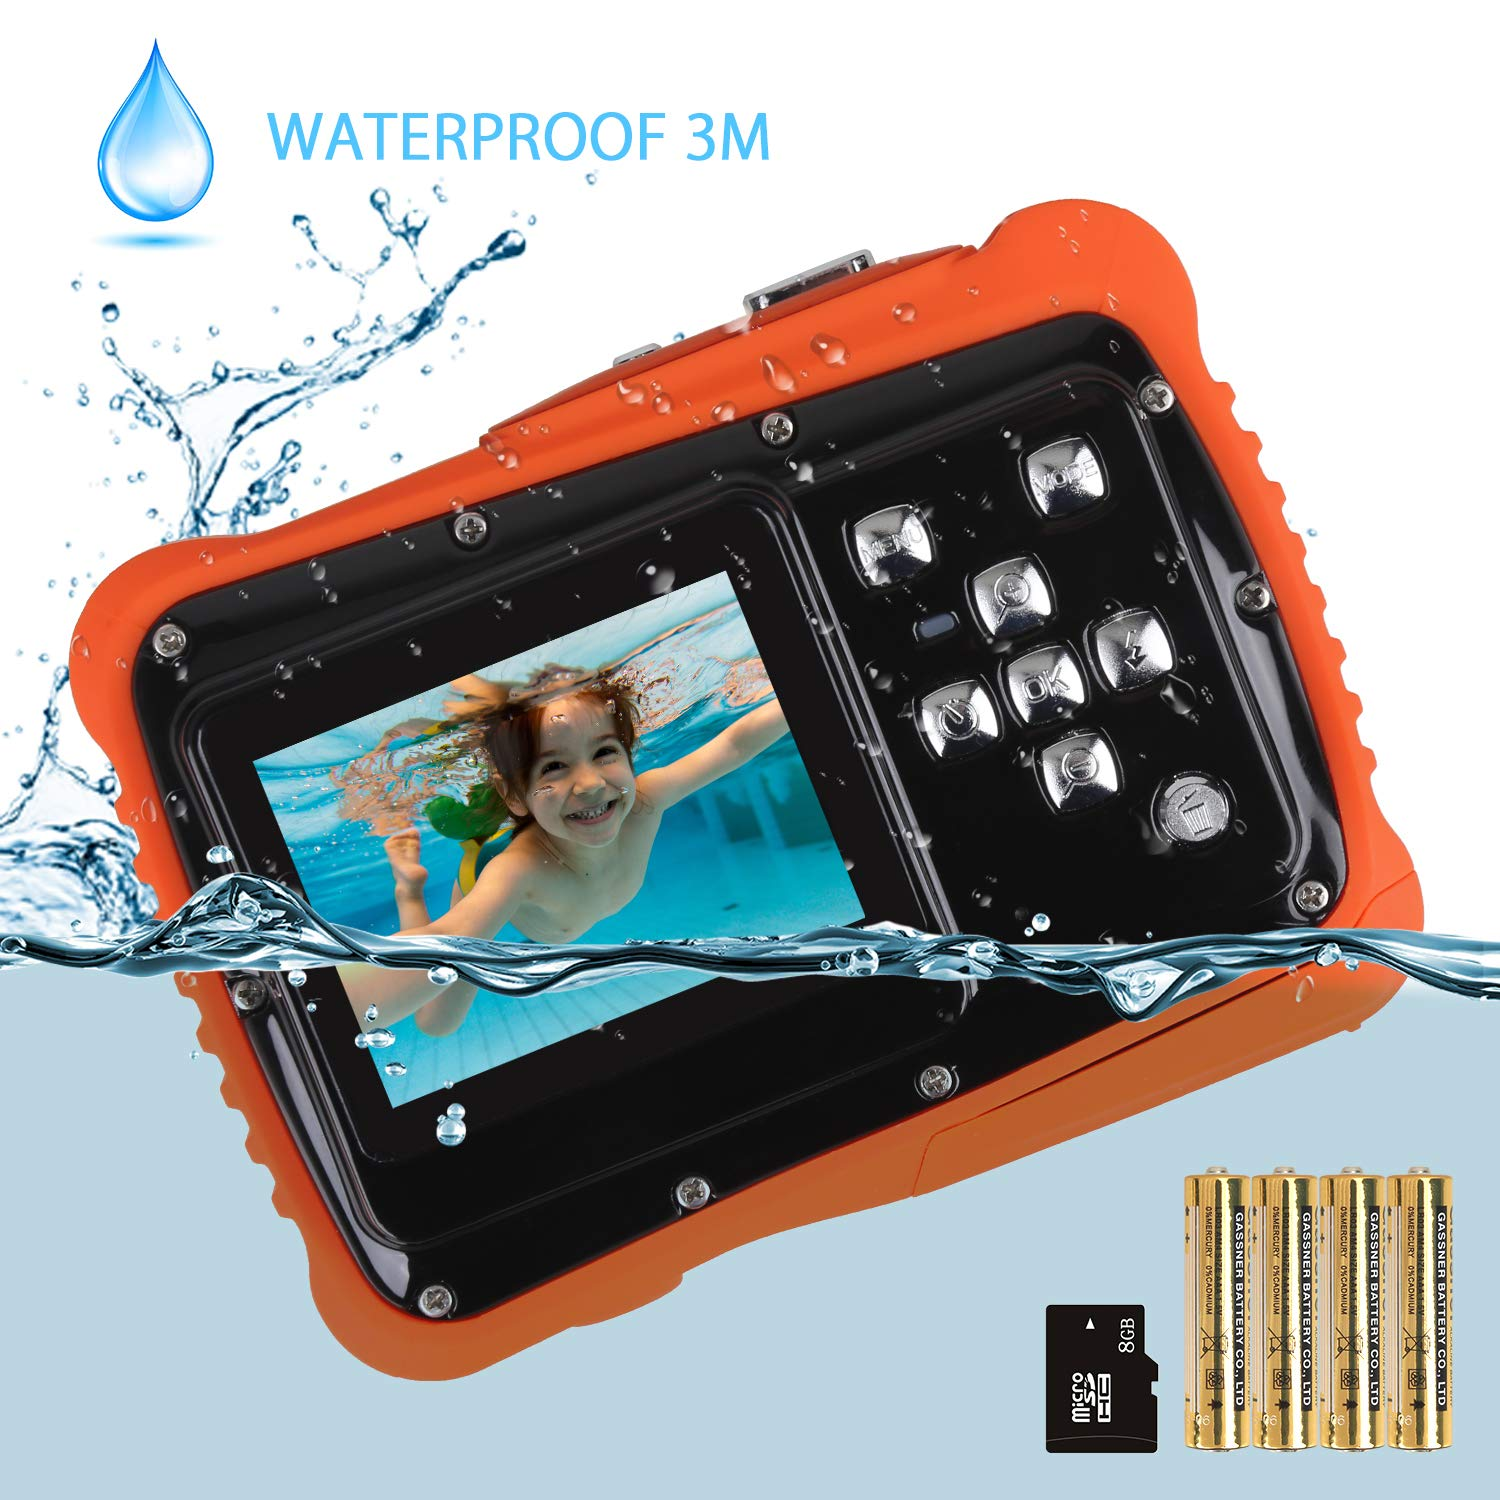 Kids Camera, Digital Waterproof Camera for Children with 3M Waterproof, 2 Inch LCD Screen, 12MP HD Resolution, 8X Digital Zoom and Flash with A 8G SD Card and Non-Rechargeable Battery by LDF